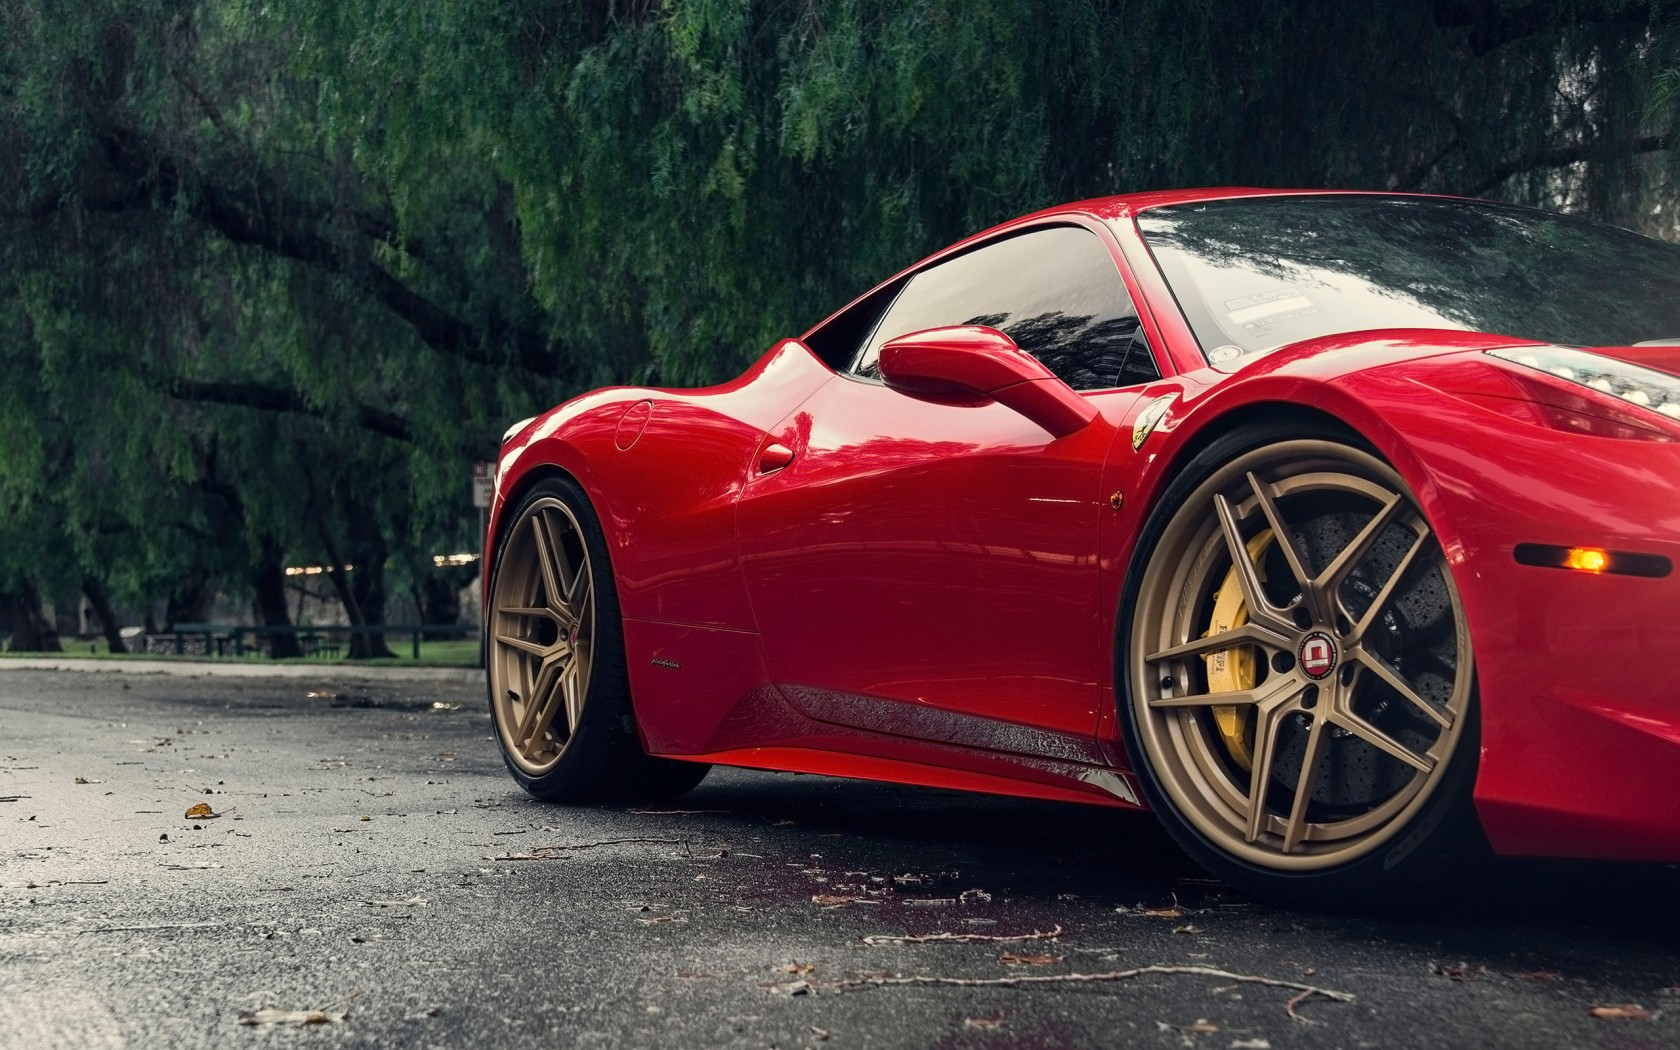 2015 Klassen ID Ferrari 458 Italia 2 Wallpaper HD Car